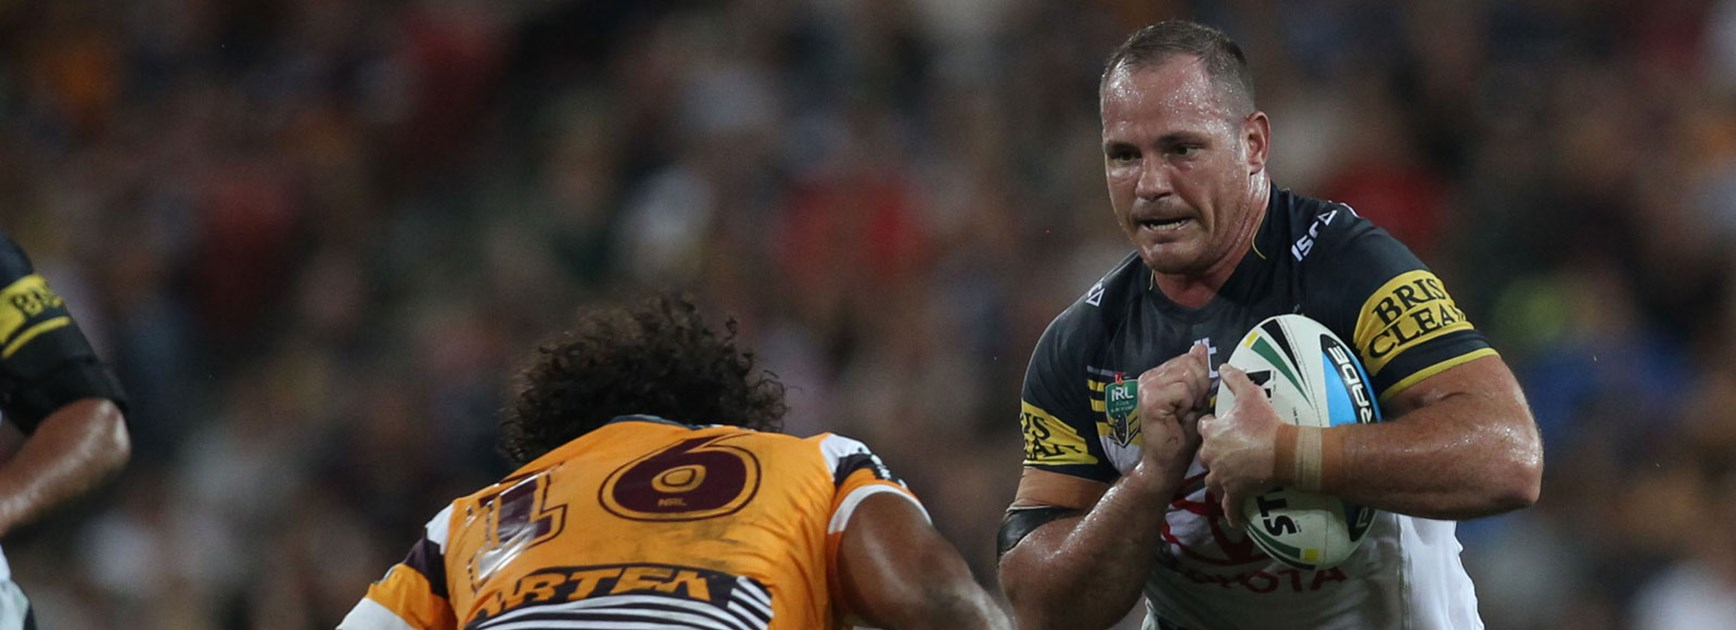 Test and Origin teammates Matt Scott and Sam Thaiday go head-to-head on Friday night.